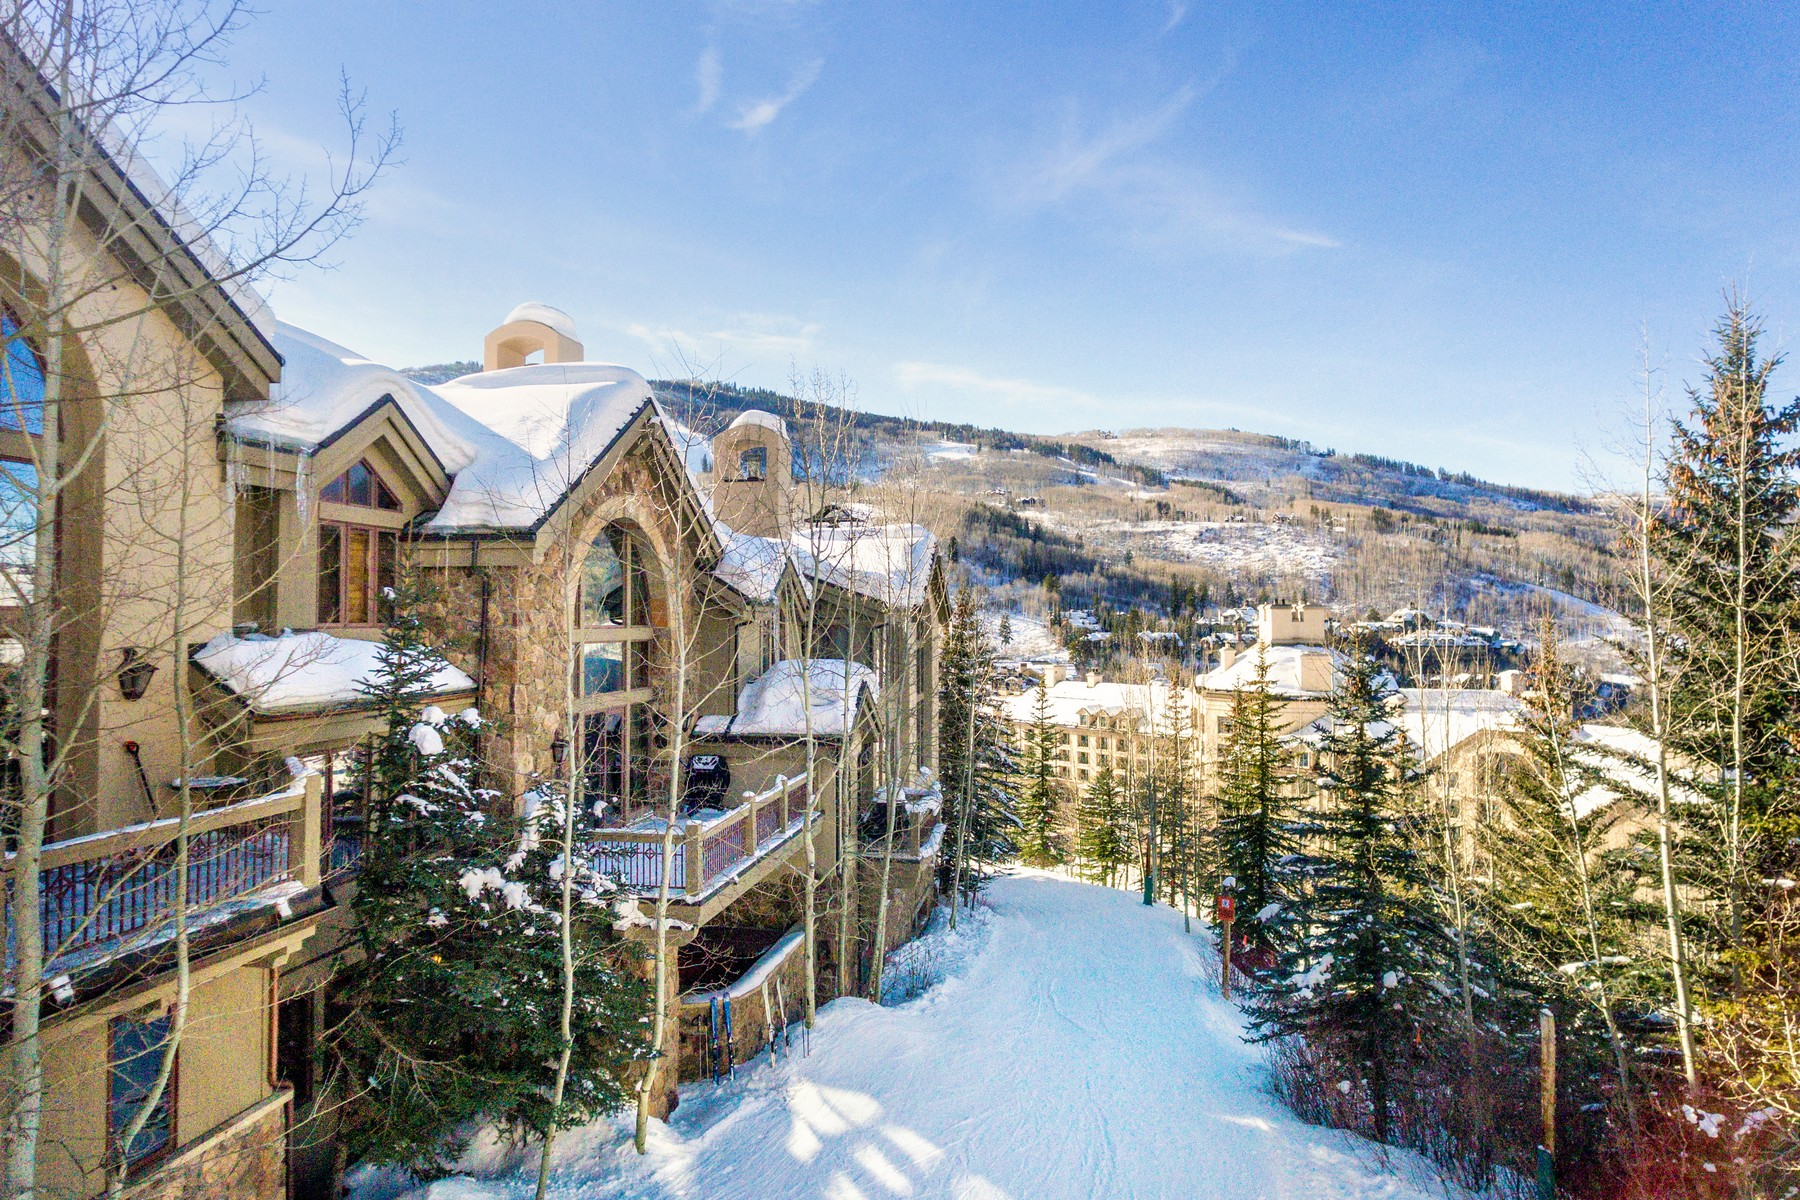 Casa unifamiliar adosada (Townhouse) por un Venta en Prestigious Ski-In/Ski-Out Enclave 52 Highlands Lane Beaver Creek, Beaver Creek, Colorado, 81620 Estados Unidos